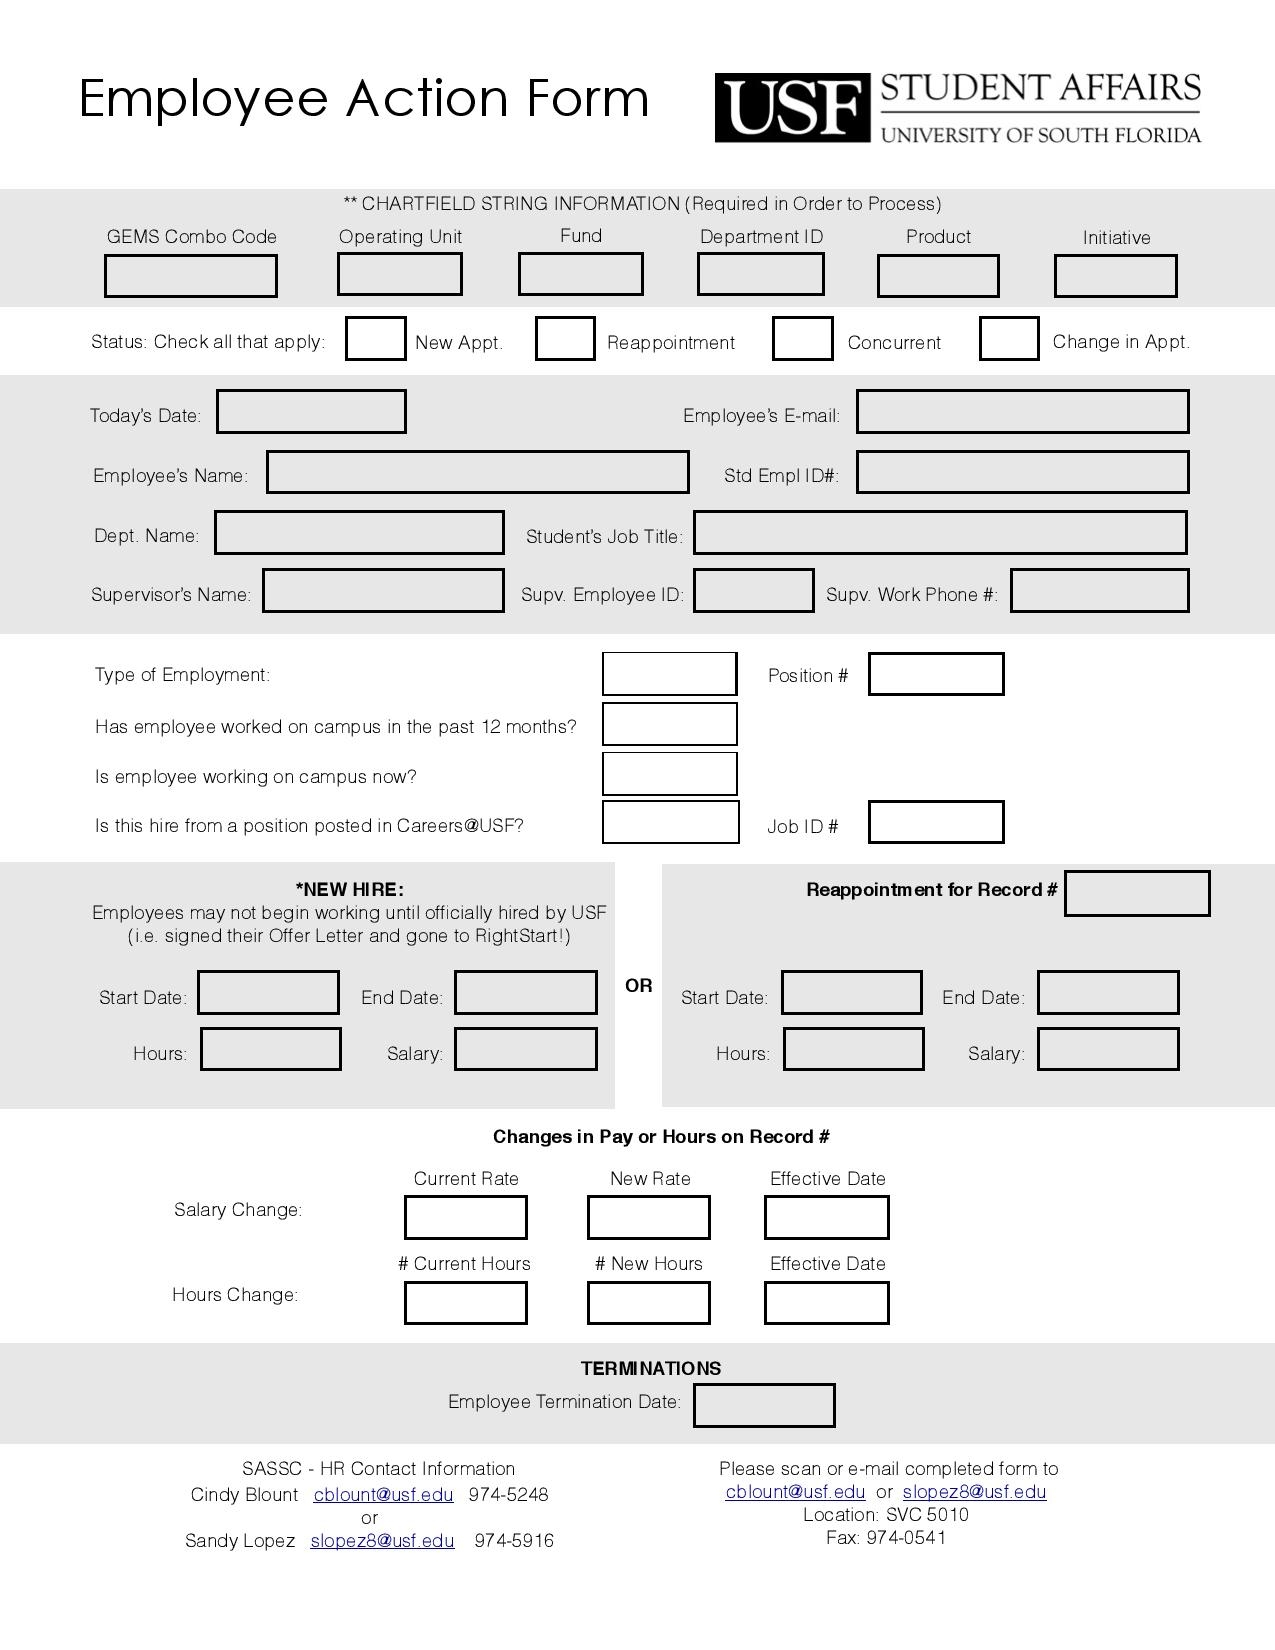 employee action form 2 page 0013